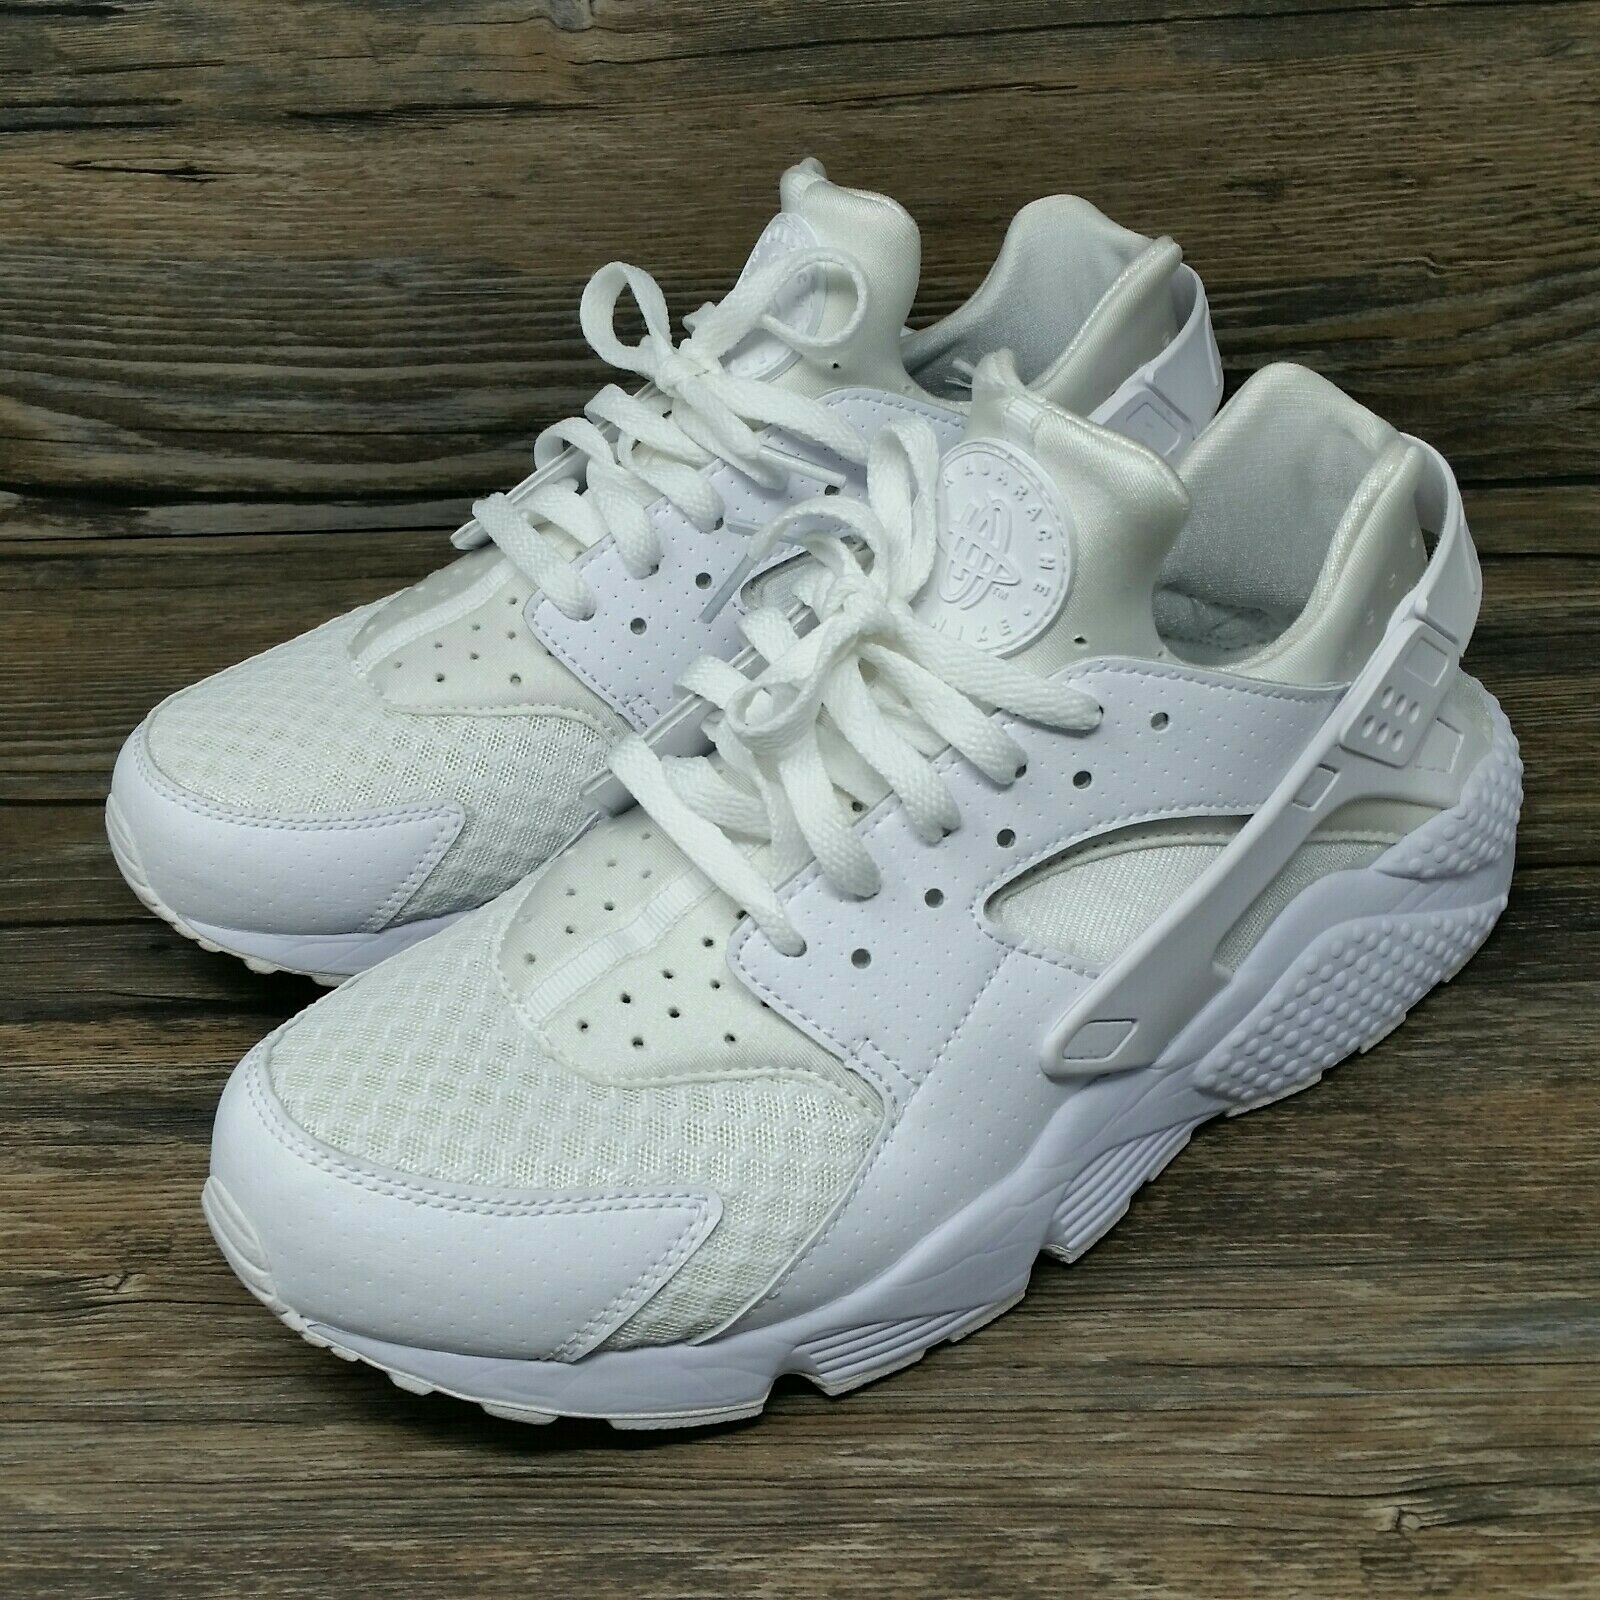 Nike Air Huarache Run (Men's Size 10.5) 10.5) 10.5) Athletic Running Sneaker shoes Wh 820691